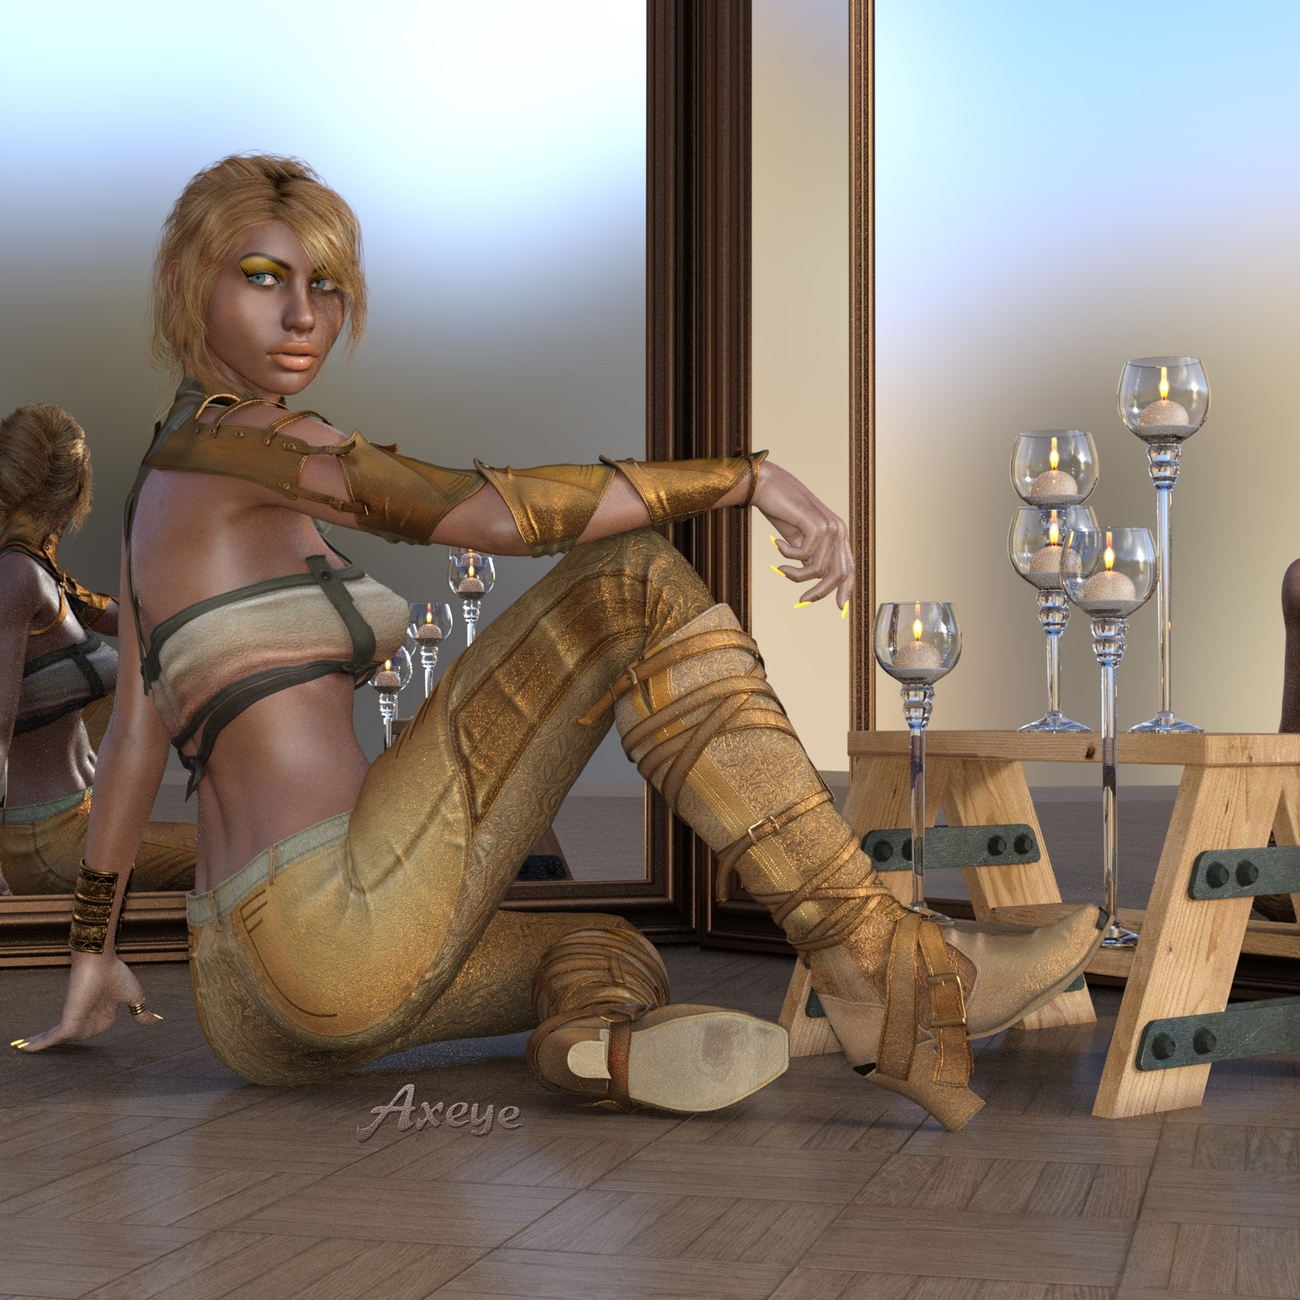 Waiting Game by Axeye